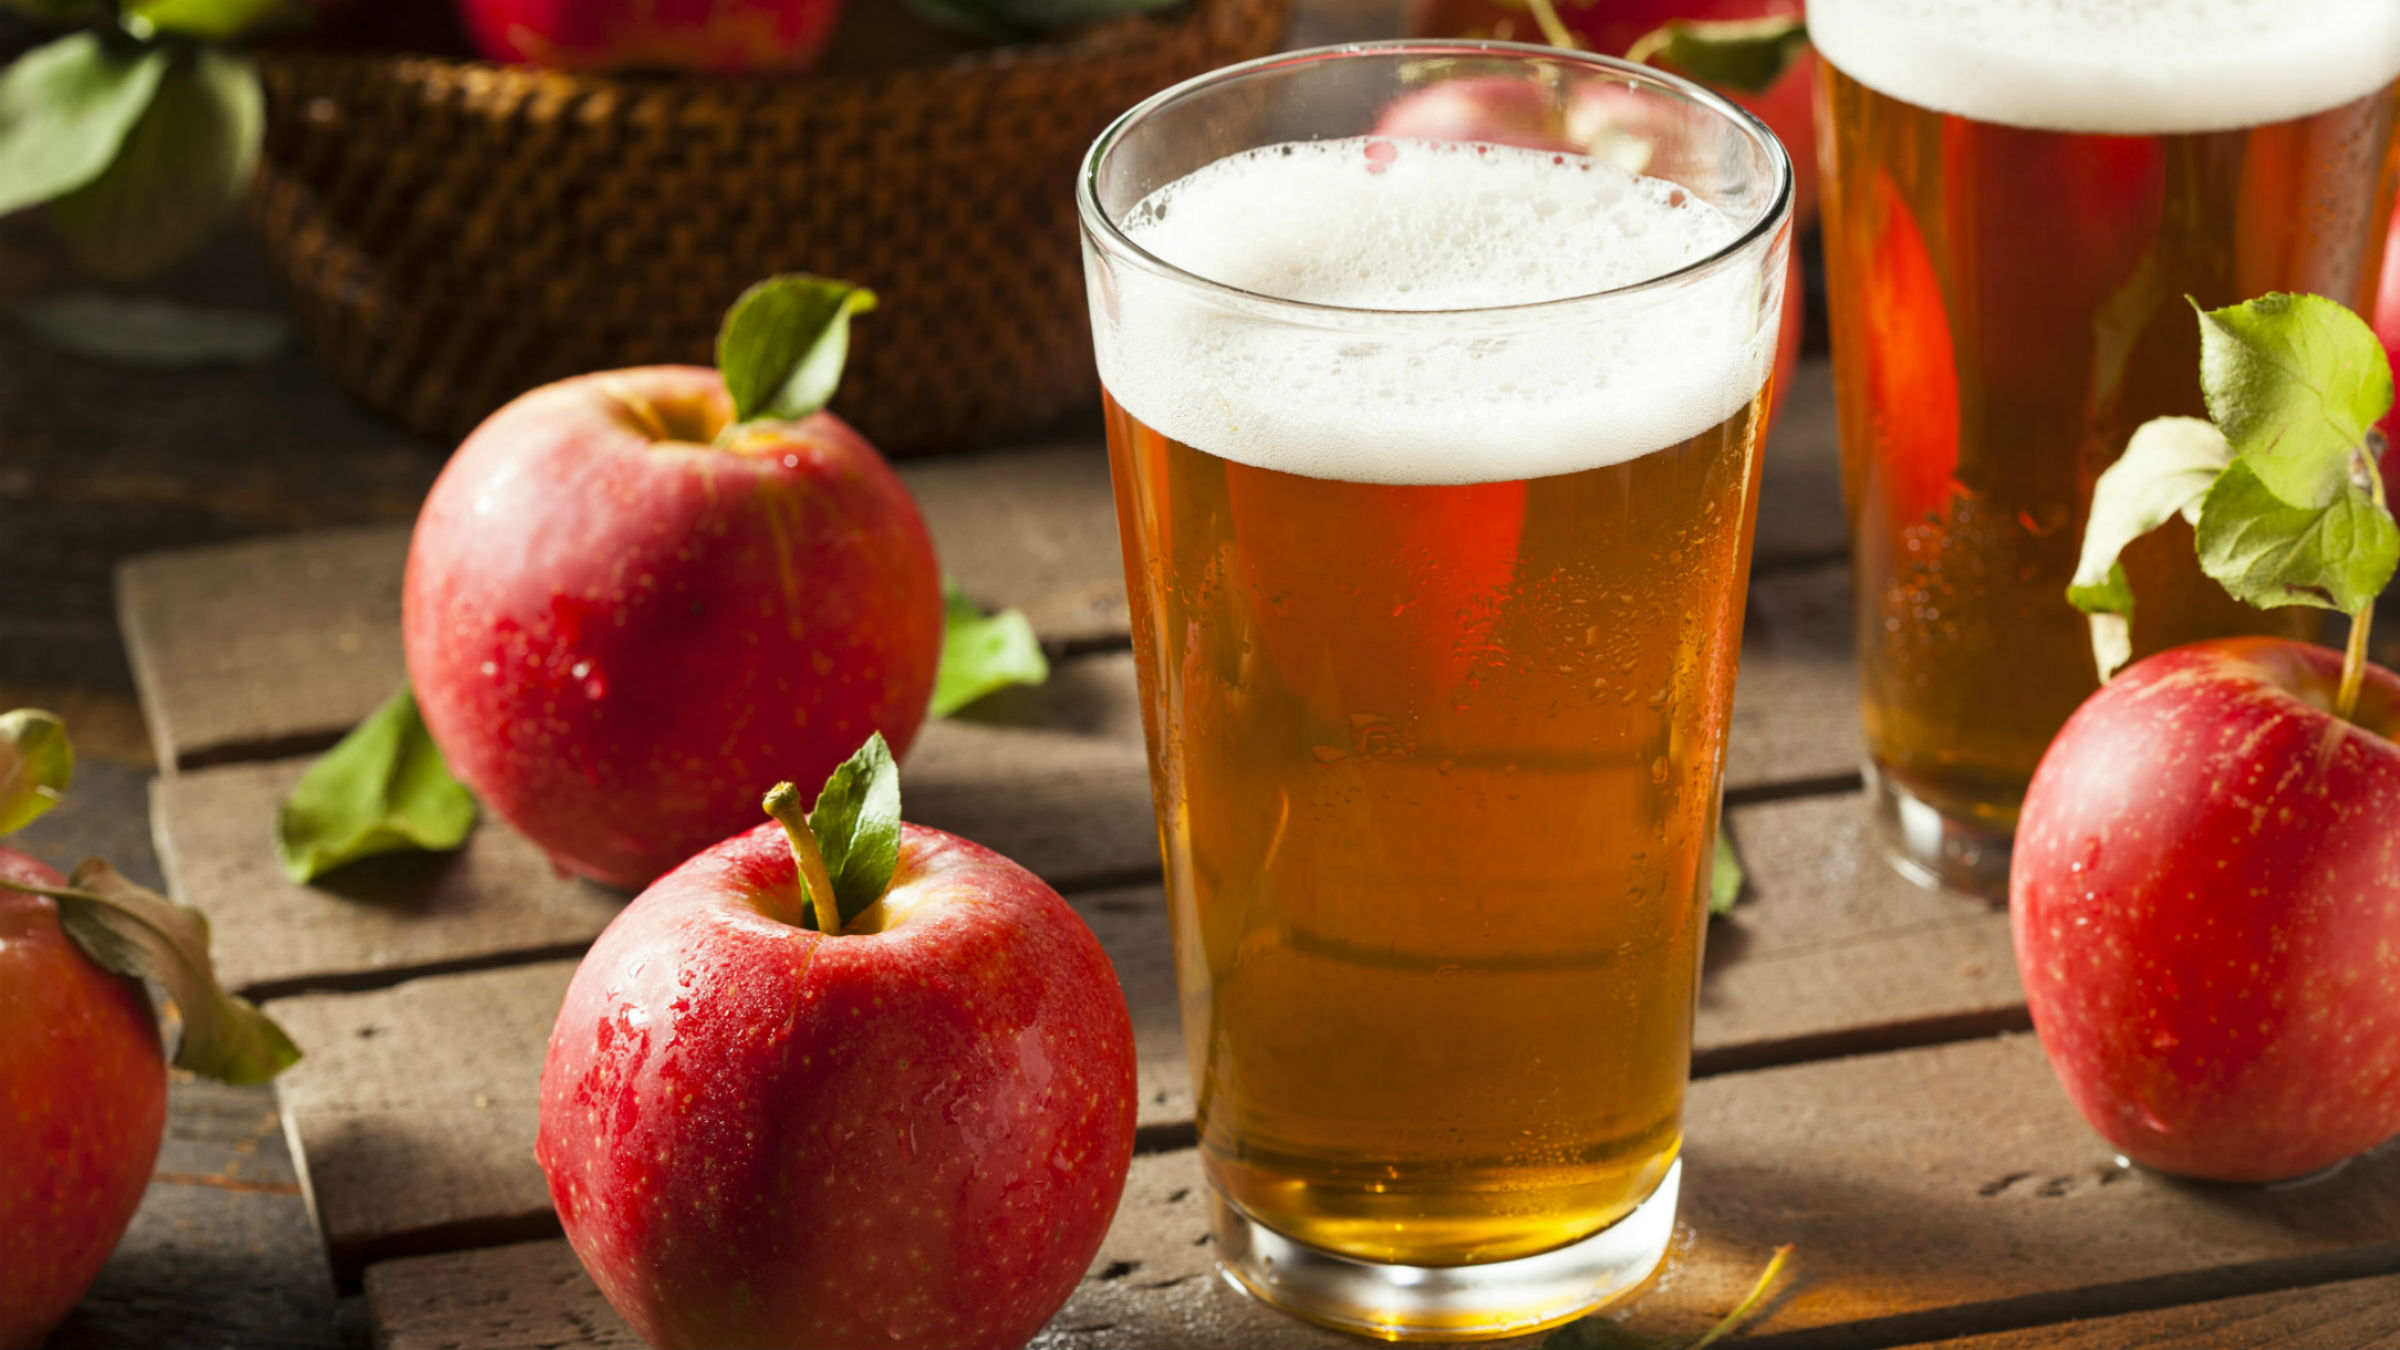 apple cider how to drink